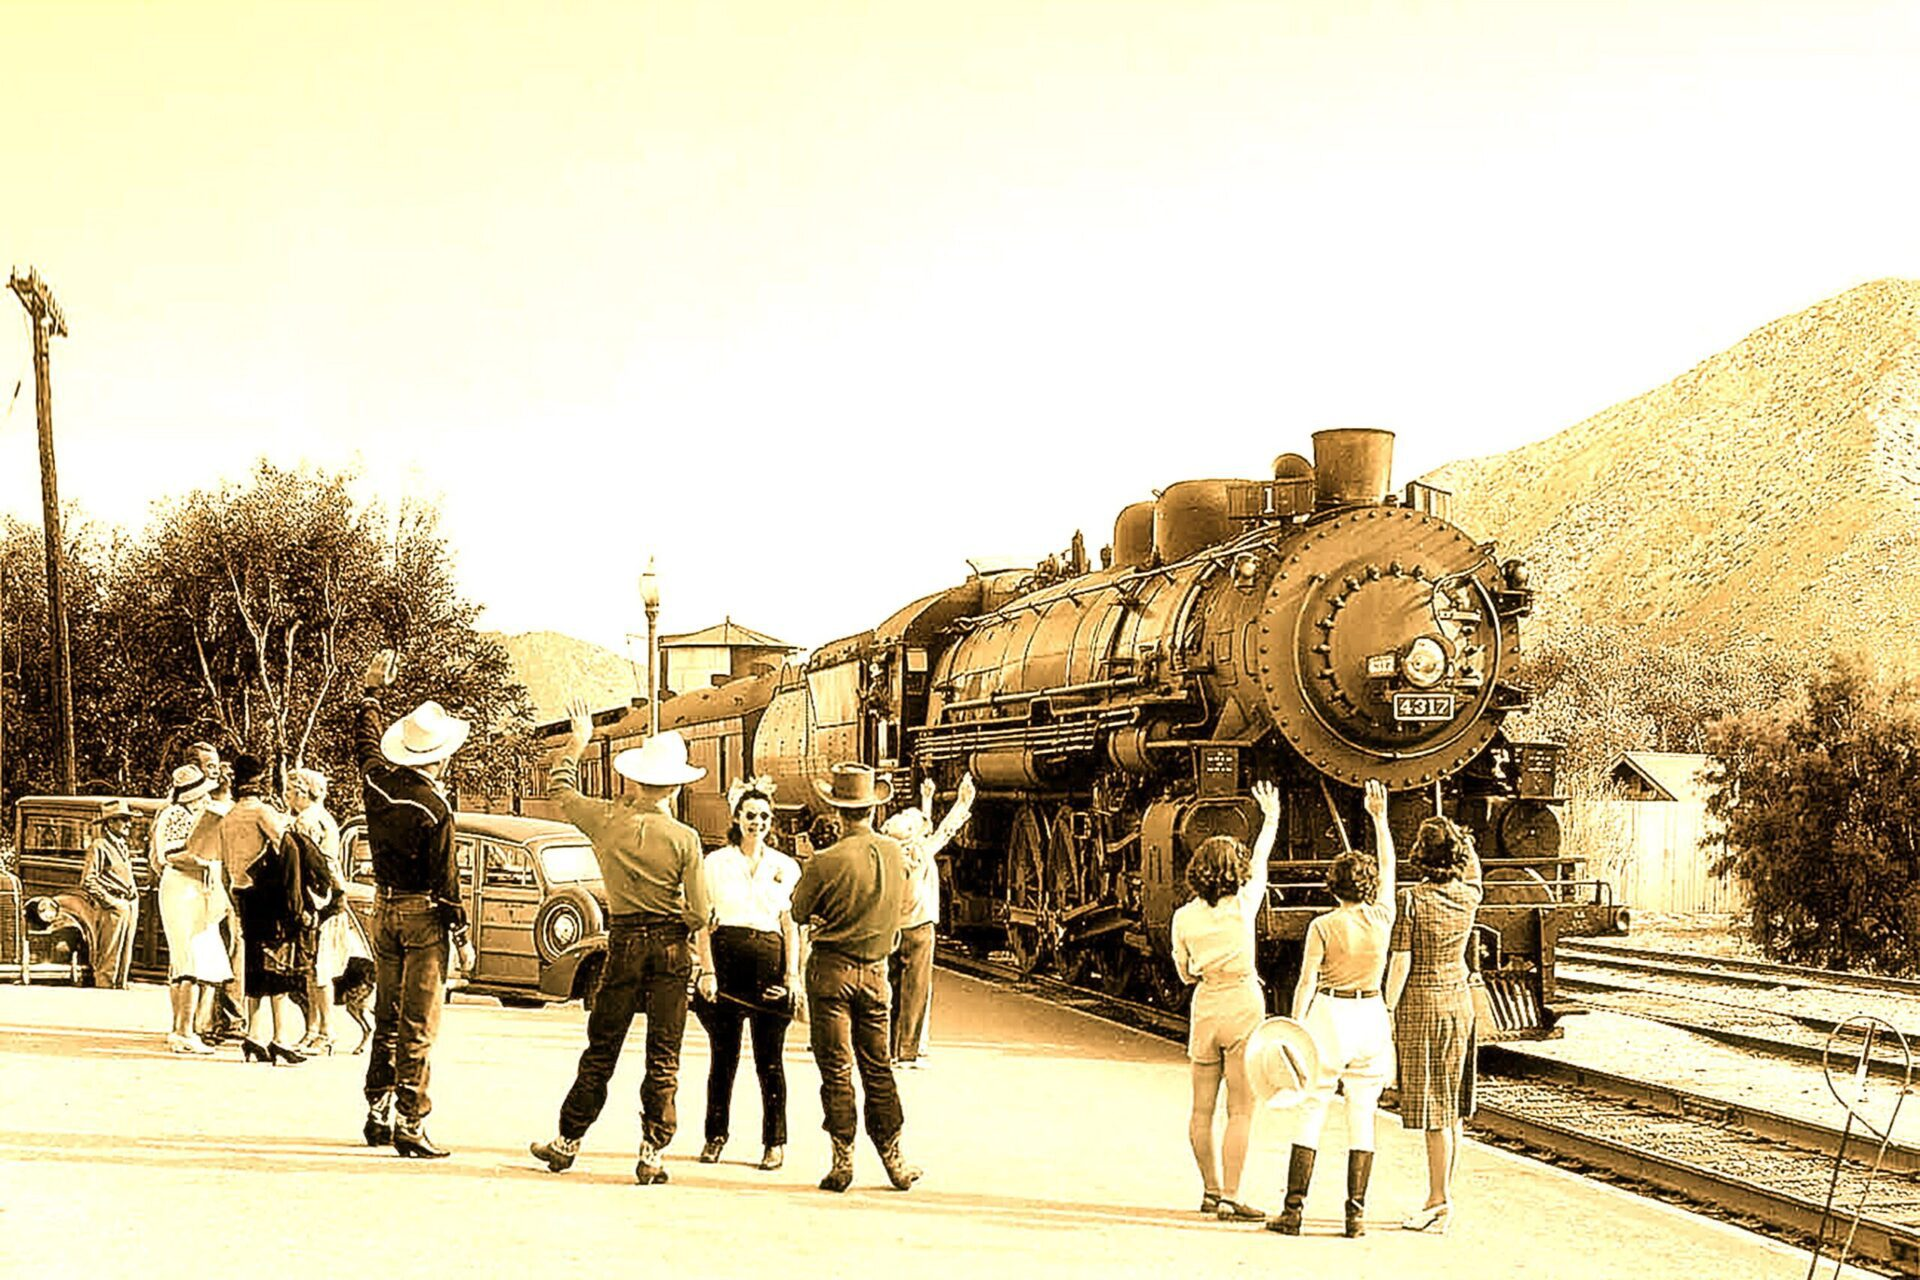 palm springs railroad arriving in 1940